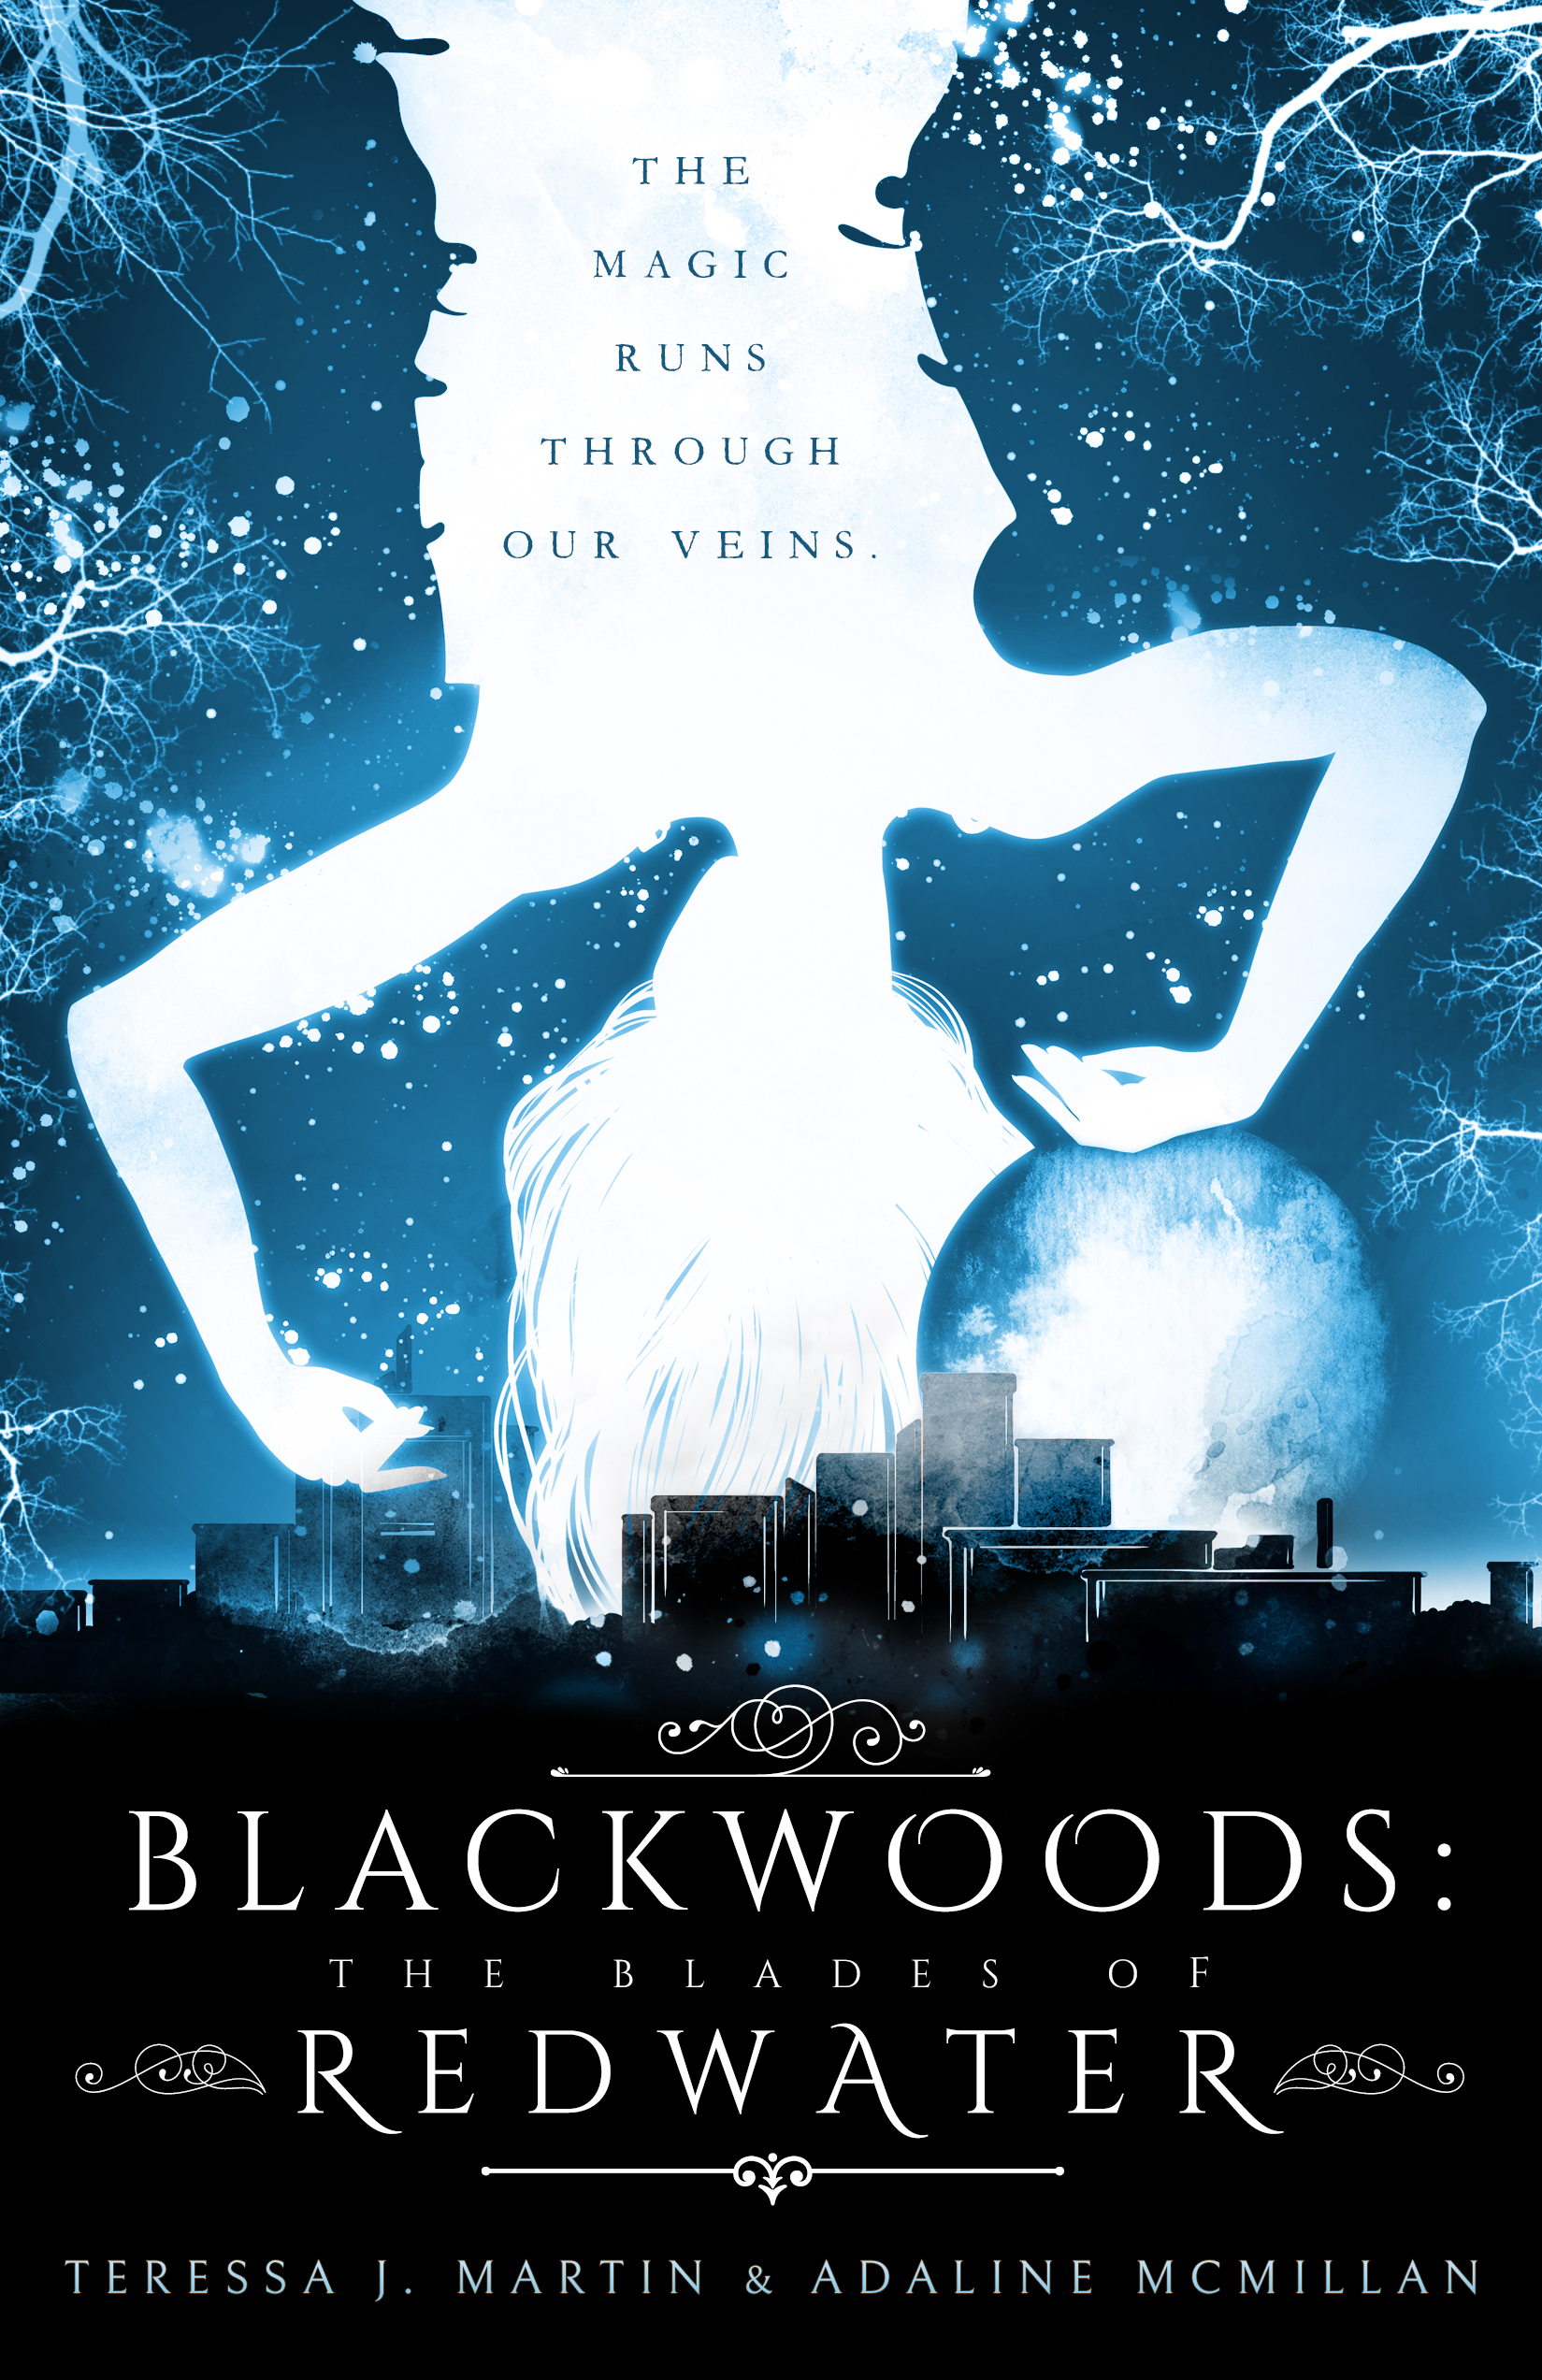 Blackwoods - The Blades of Redwater - Ebook Cover.jpg